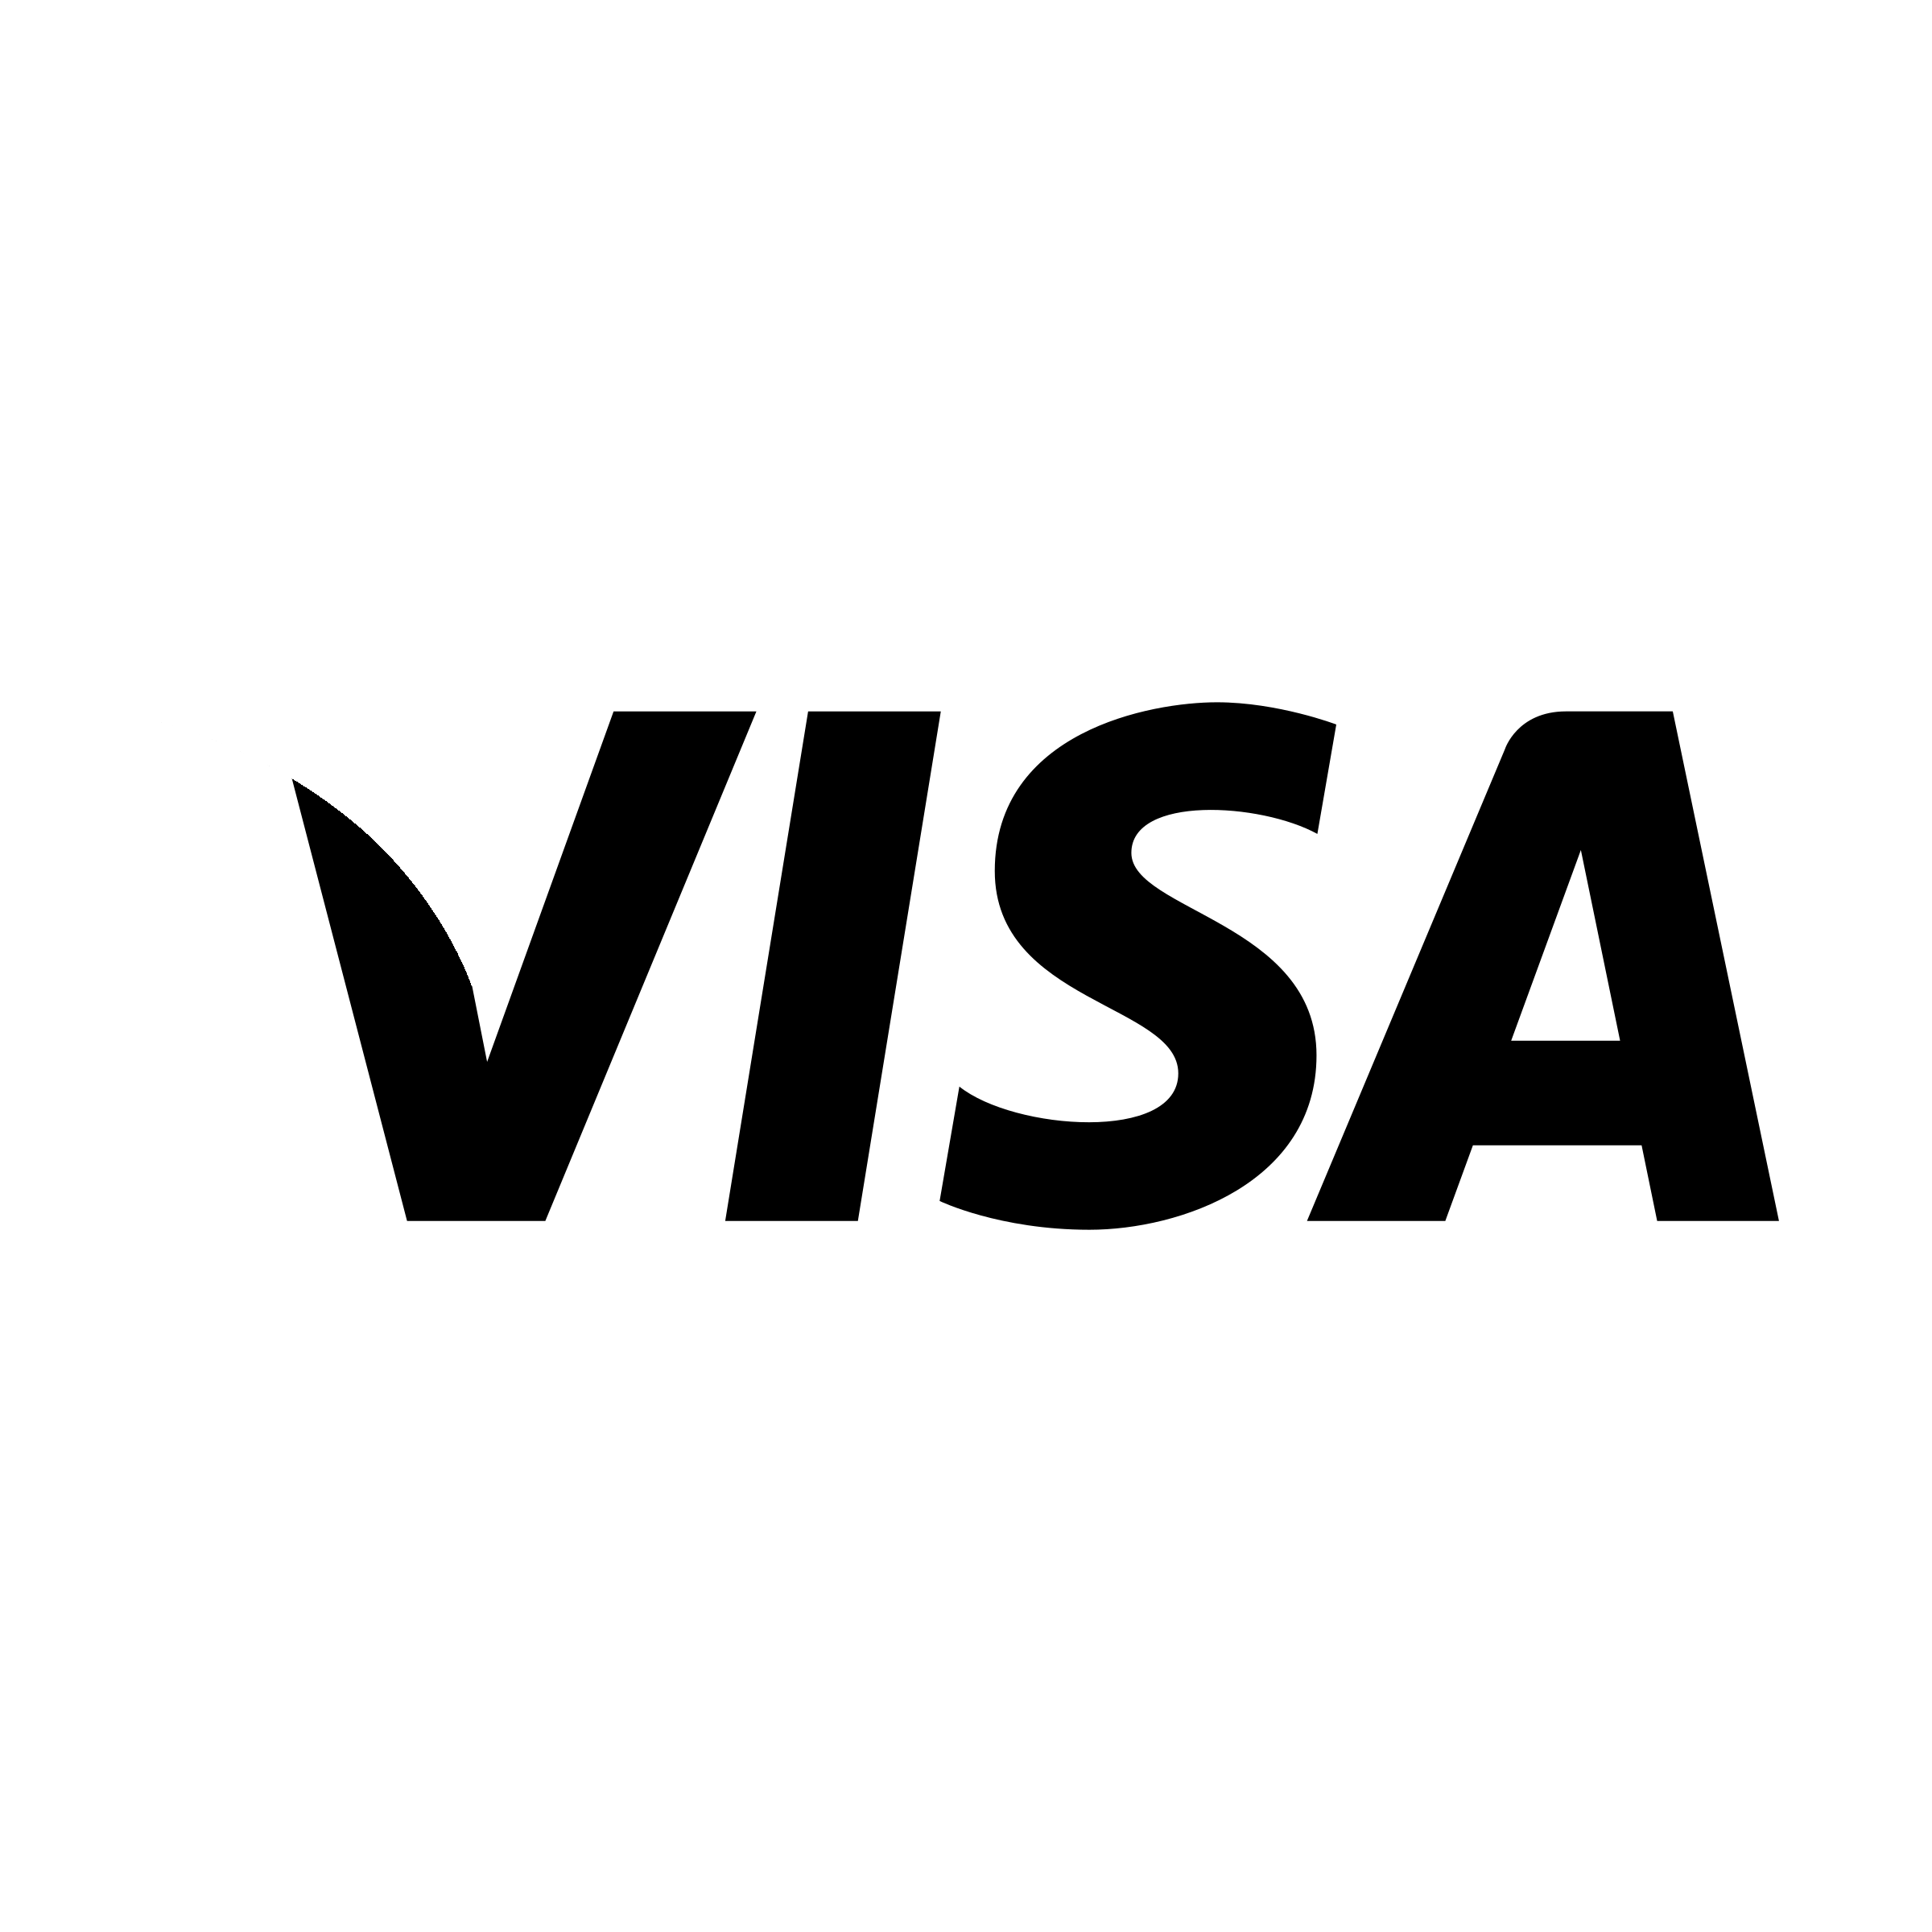 Black Logo Png, png collections at sccpre.cat.